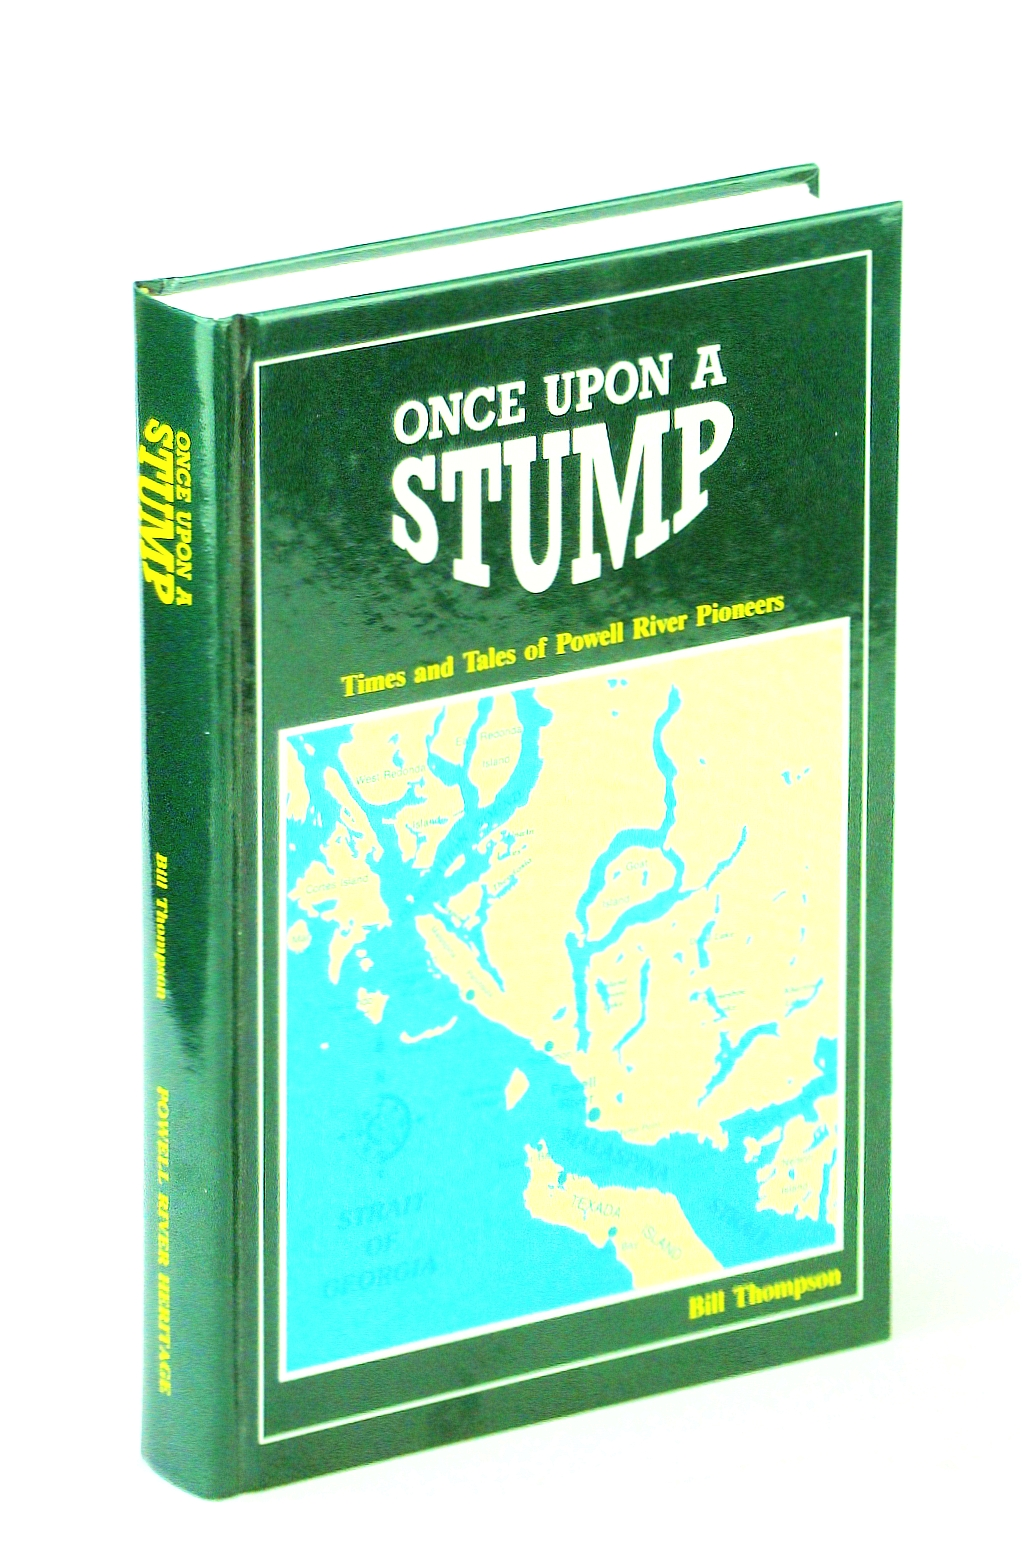 Image for Once upon a stump: Times and tales of Powell River pioneers